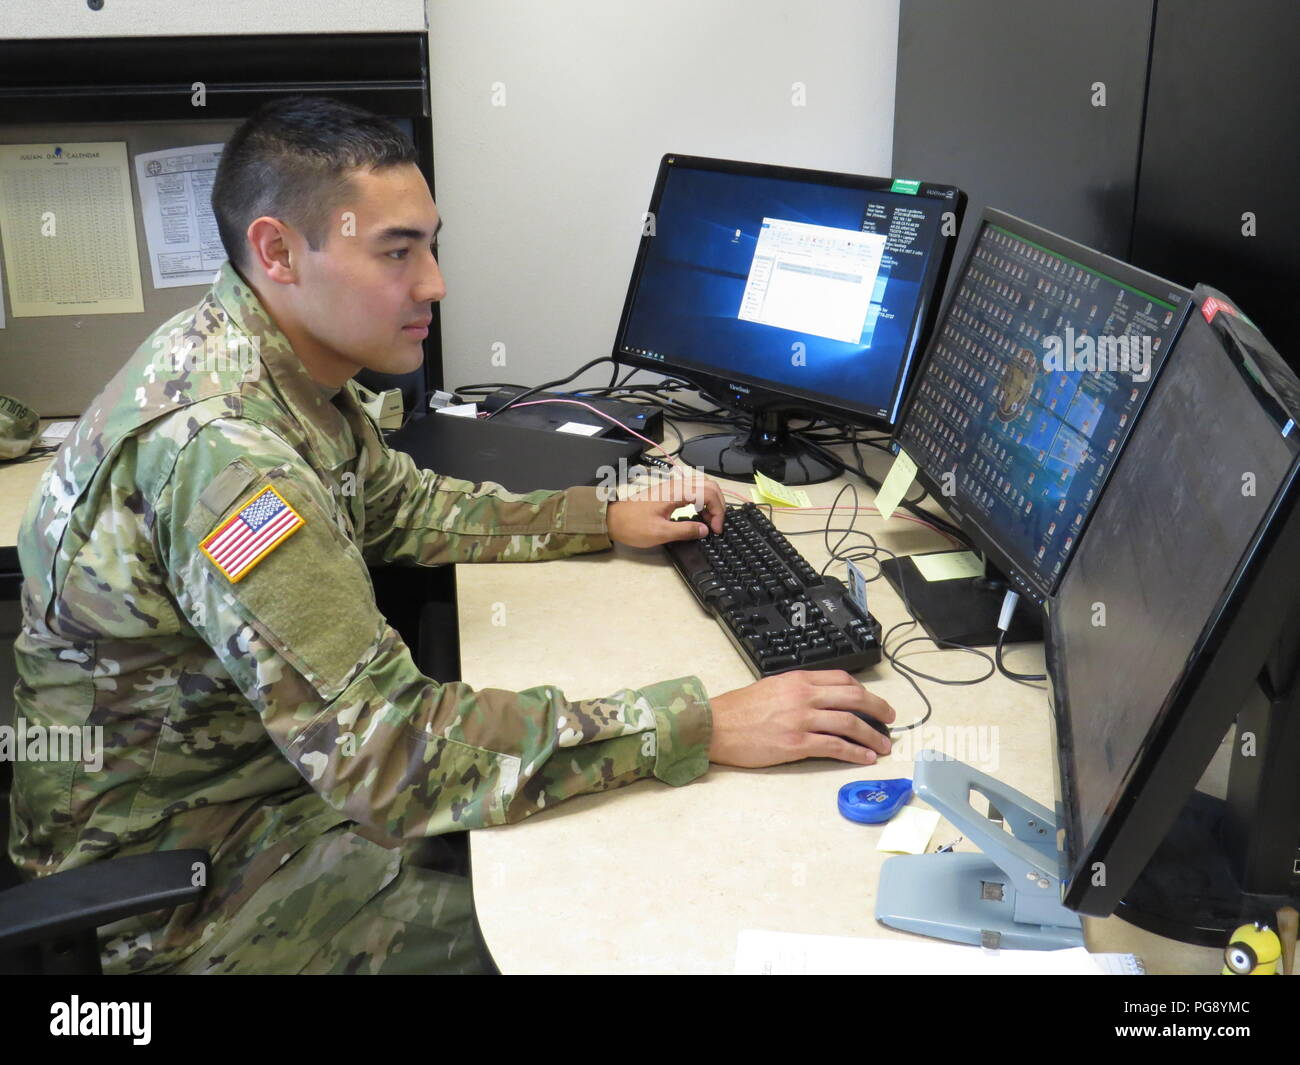 US Army Reserve 1st Lt. Michael Pernell reviews personnel files during the 211th RSG's monthly weekend drill on August 19, 2018, at Corpus Christi, Texas. 1st Pernell is a Human Resources Officer and personnel strength manager with the 211th Regional Support Group (RSG) based out of Corpus Christi, Texas. Citizen-soldiers like 1st Lt. Pernell have a wide variety of skill sets which ensure America's Army Reserve units are trained to deploy bringing capable, combat-ready, and lethal firepower in support of the Army and our joint partners anywhere in the world. - Stock Image